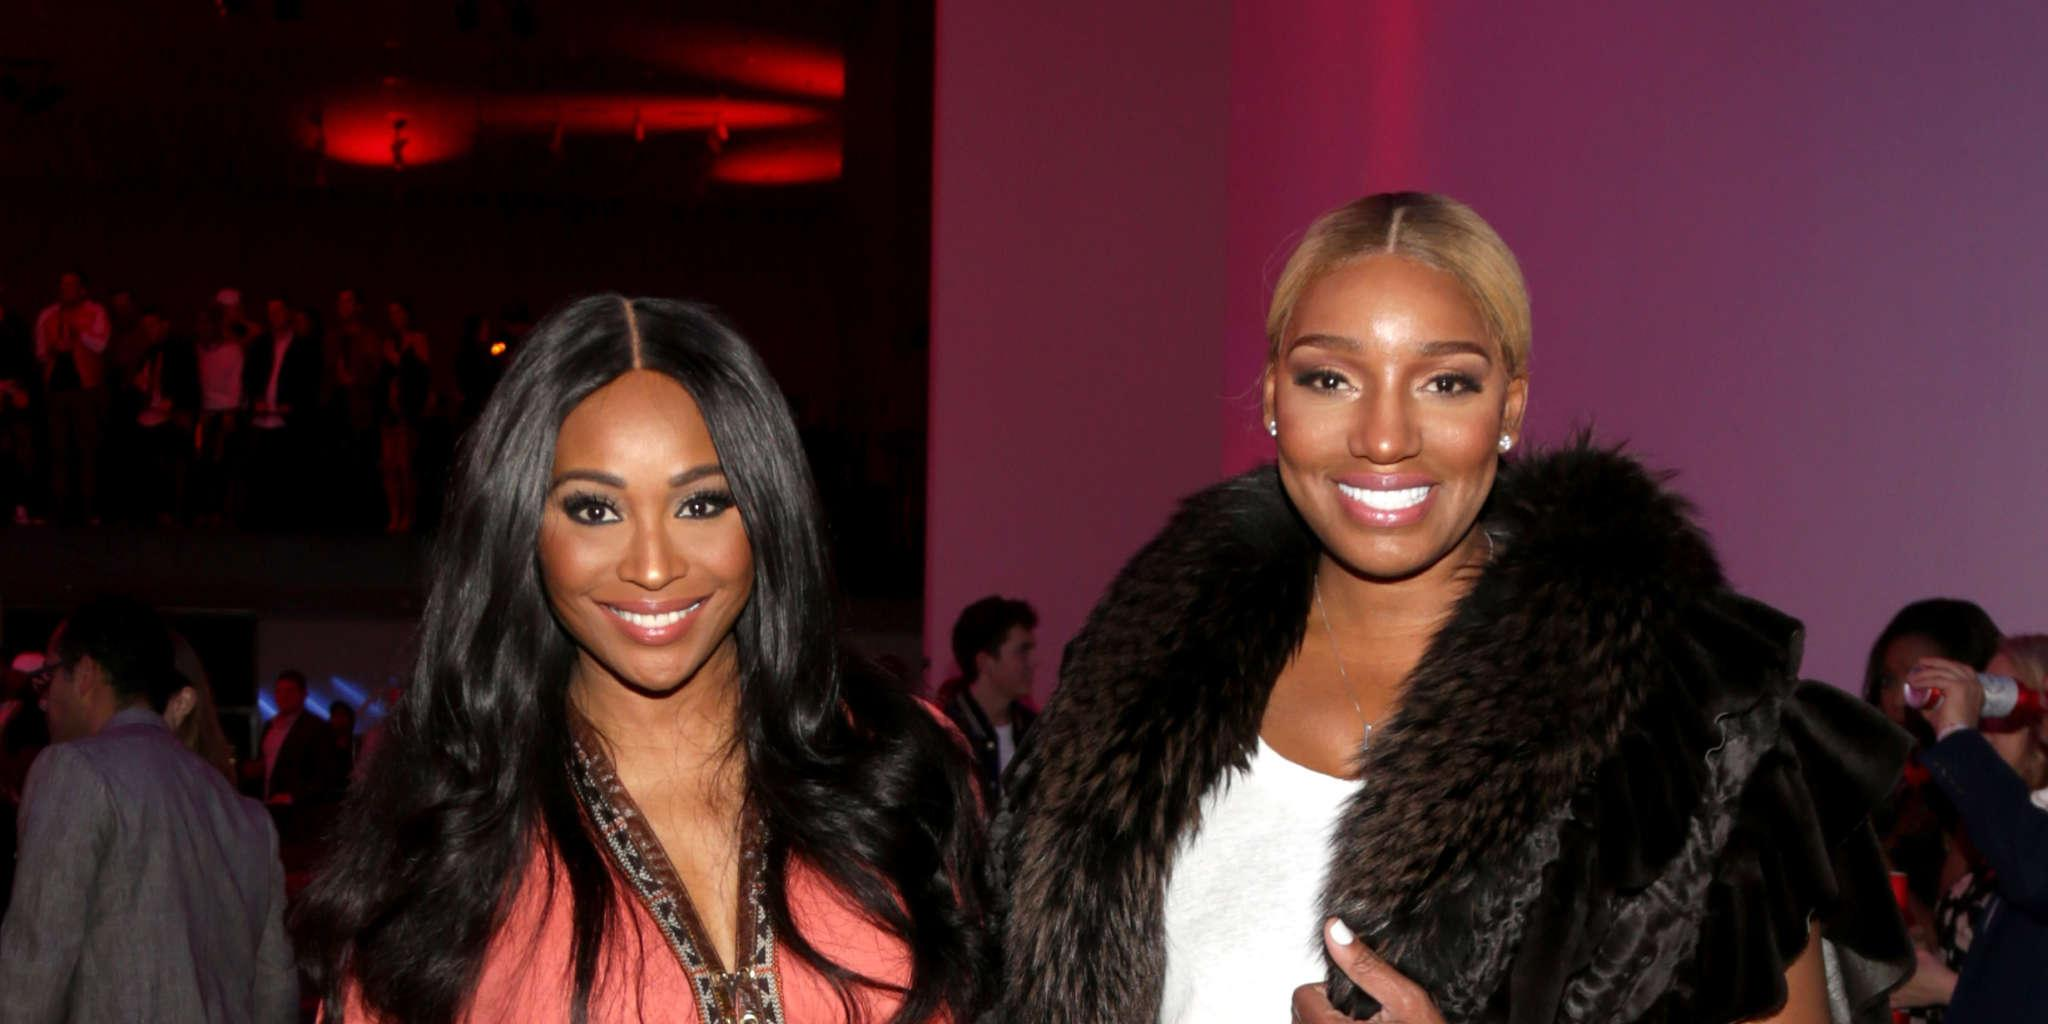 Cynthia Bailey Talks About A Potential Reconciliation With NeNe Leakes